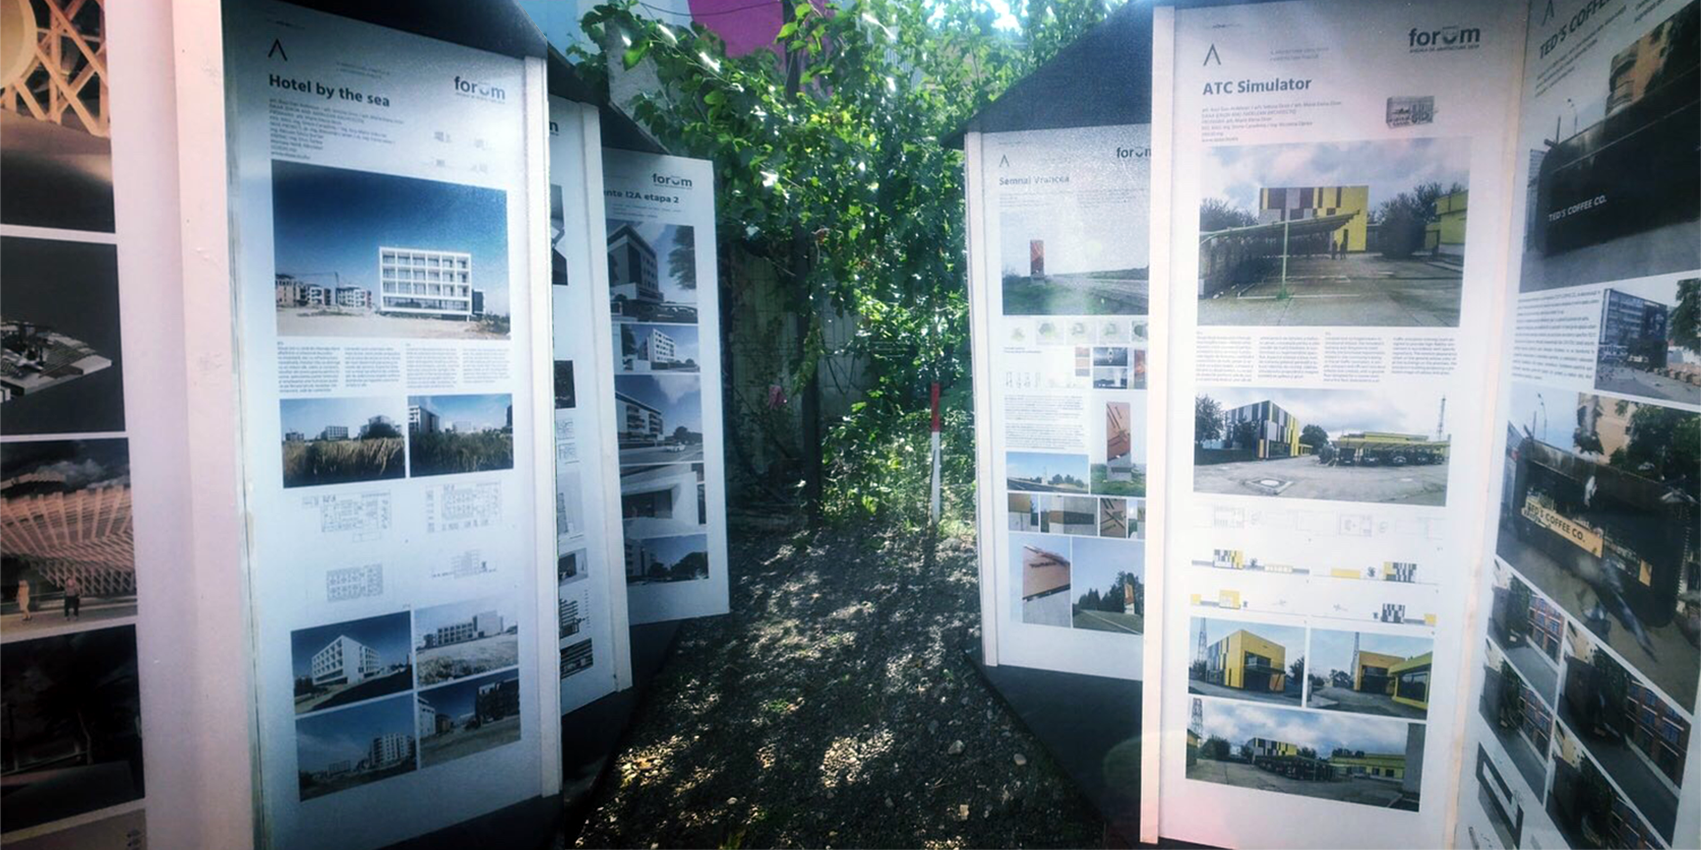 DAAA projects outdoor presentation at Mercato Comunale, as part of the events of The Bucharest Architecture Annual / Anuala de Arhitectură București 2019 - Hotel by the sea and ATC Simulator projects will be presented in AAB 2019 outdoor exhibition at Mercato Comunale, 28 - 34 Gheorghe Polizu Street, Bucharest, starting from July 17.More details here:https://www.facebook.com/MercatoCB/